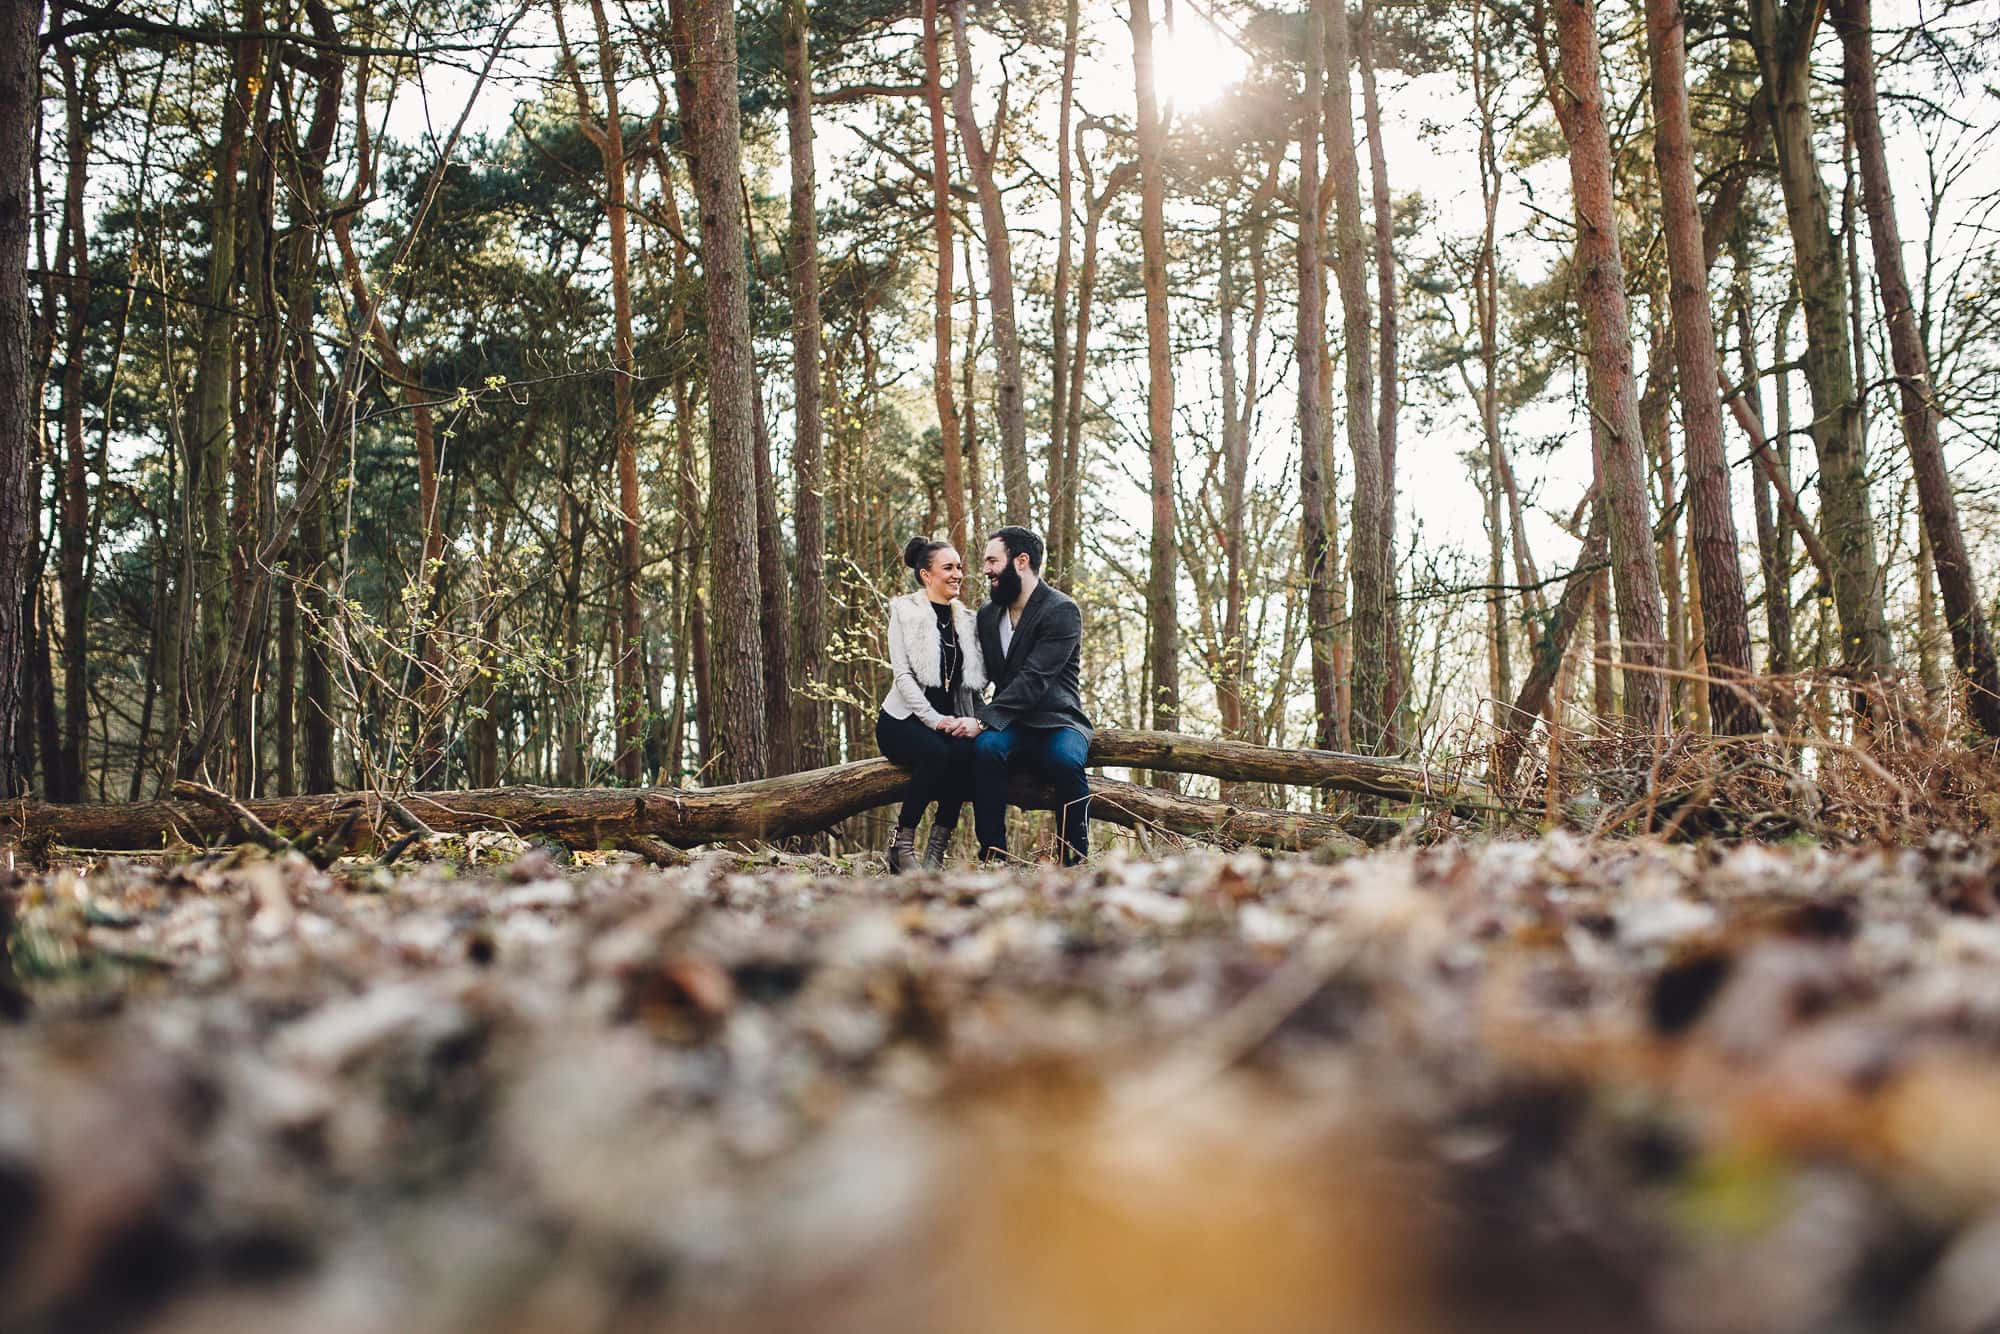 Coombe-Abbey-Engagement-Shoot-5